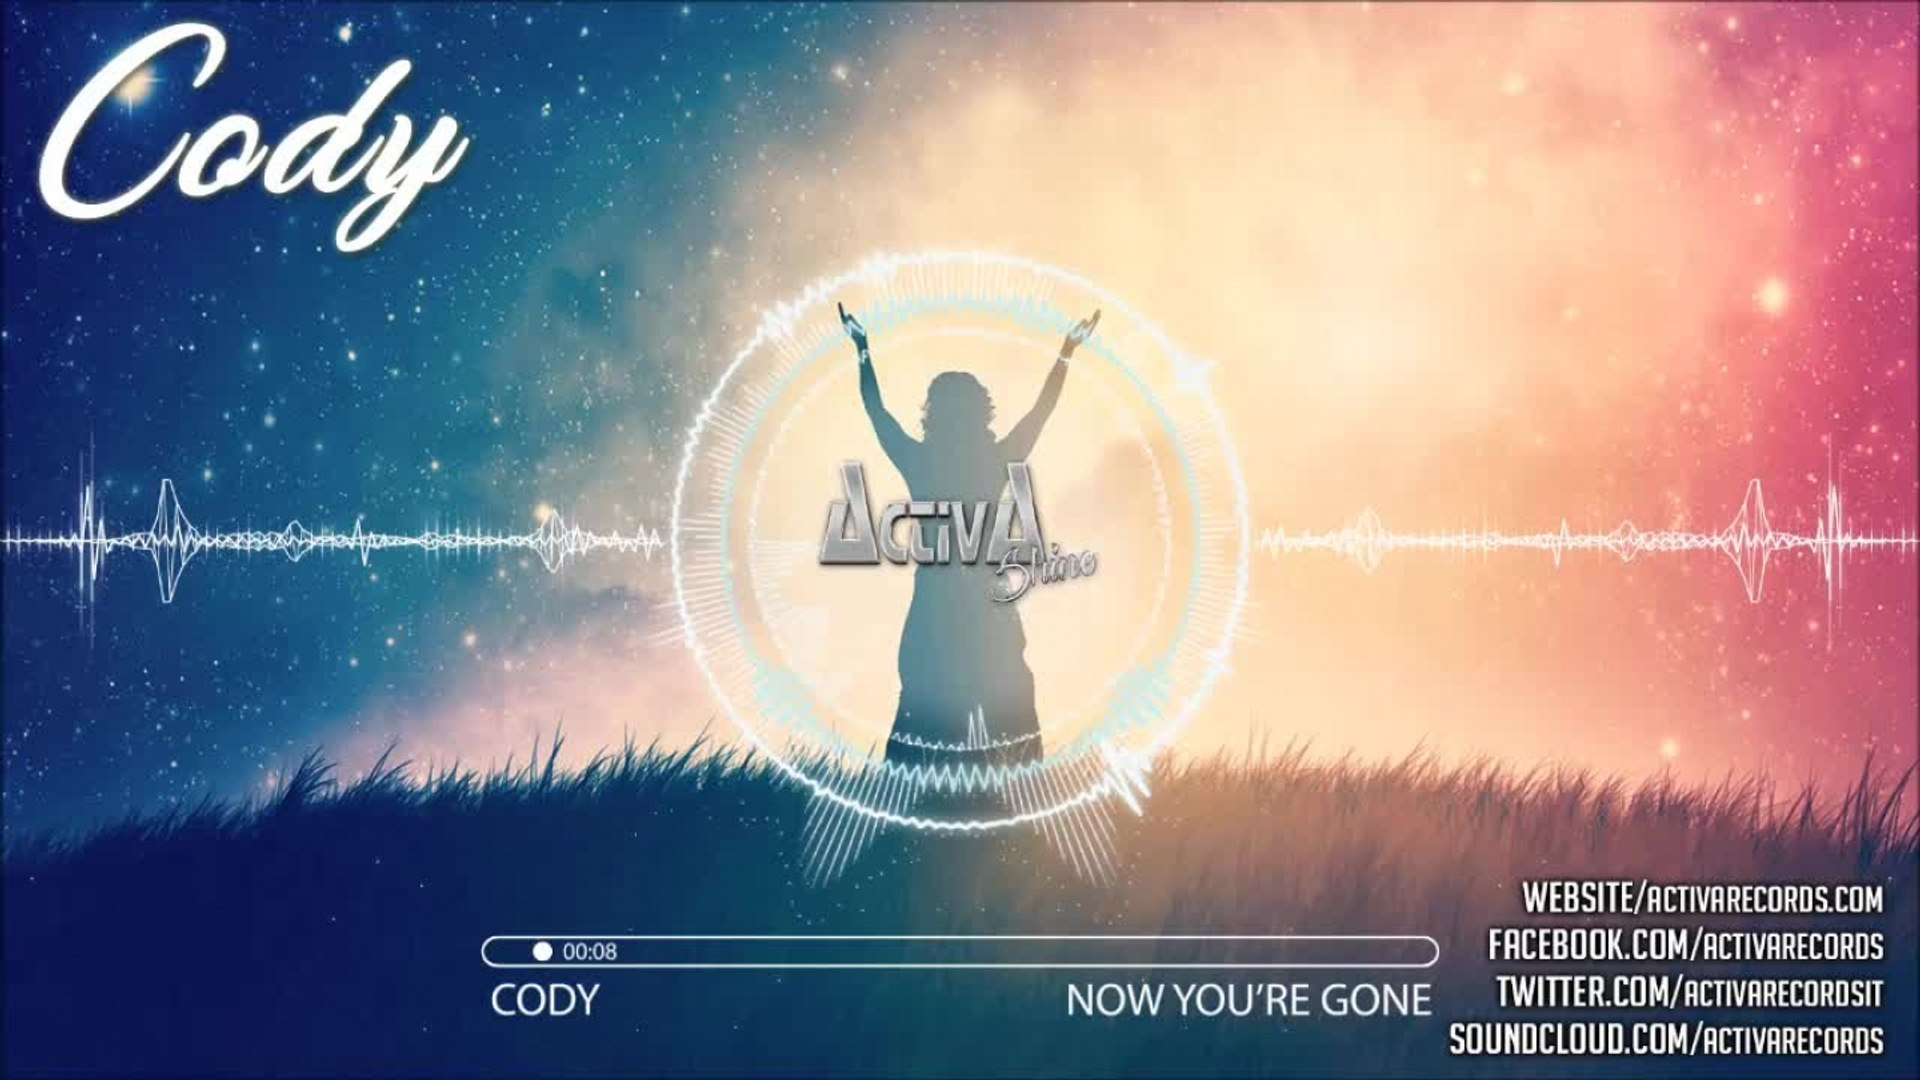 Cody - Now You're Gone (Original Mix) - Official Preview (Activa Shine)